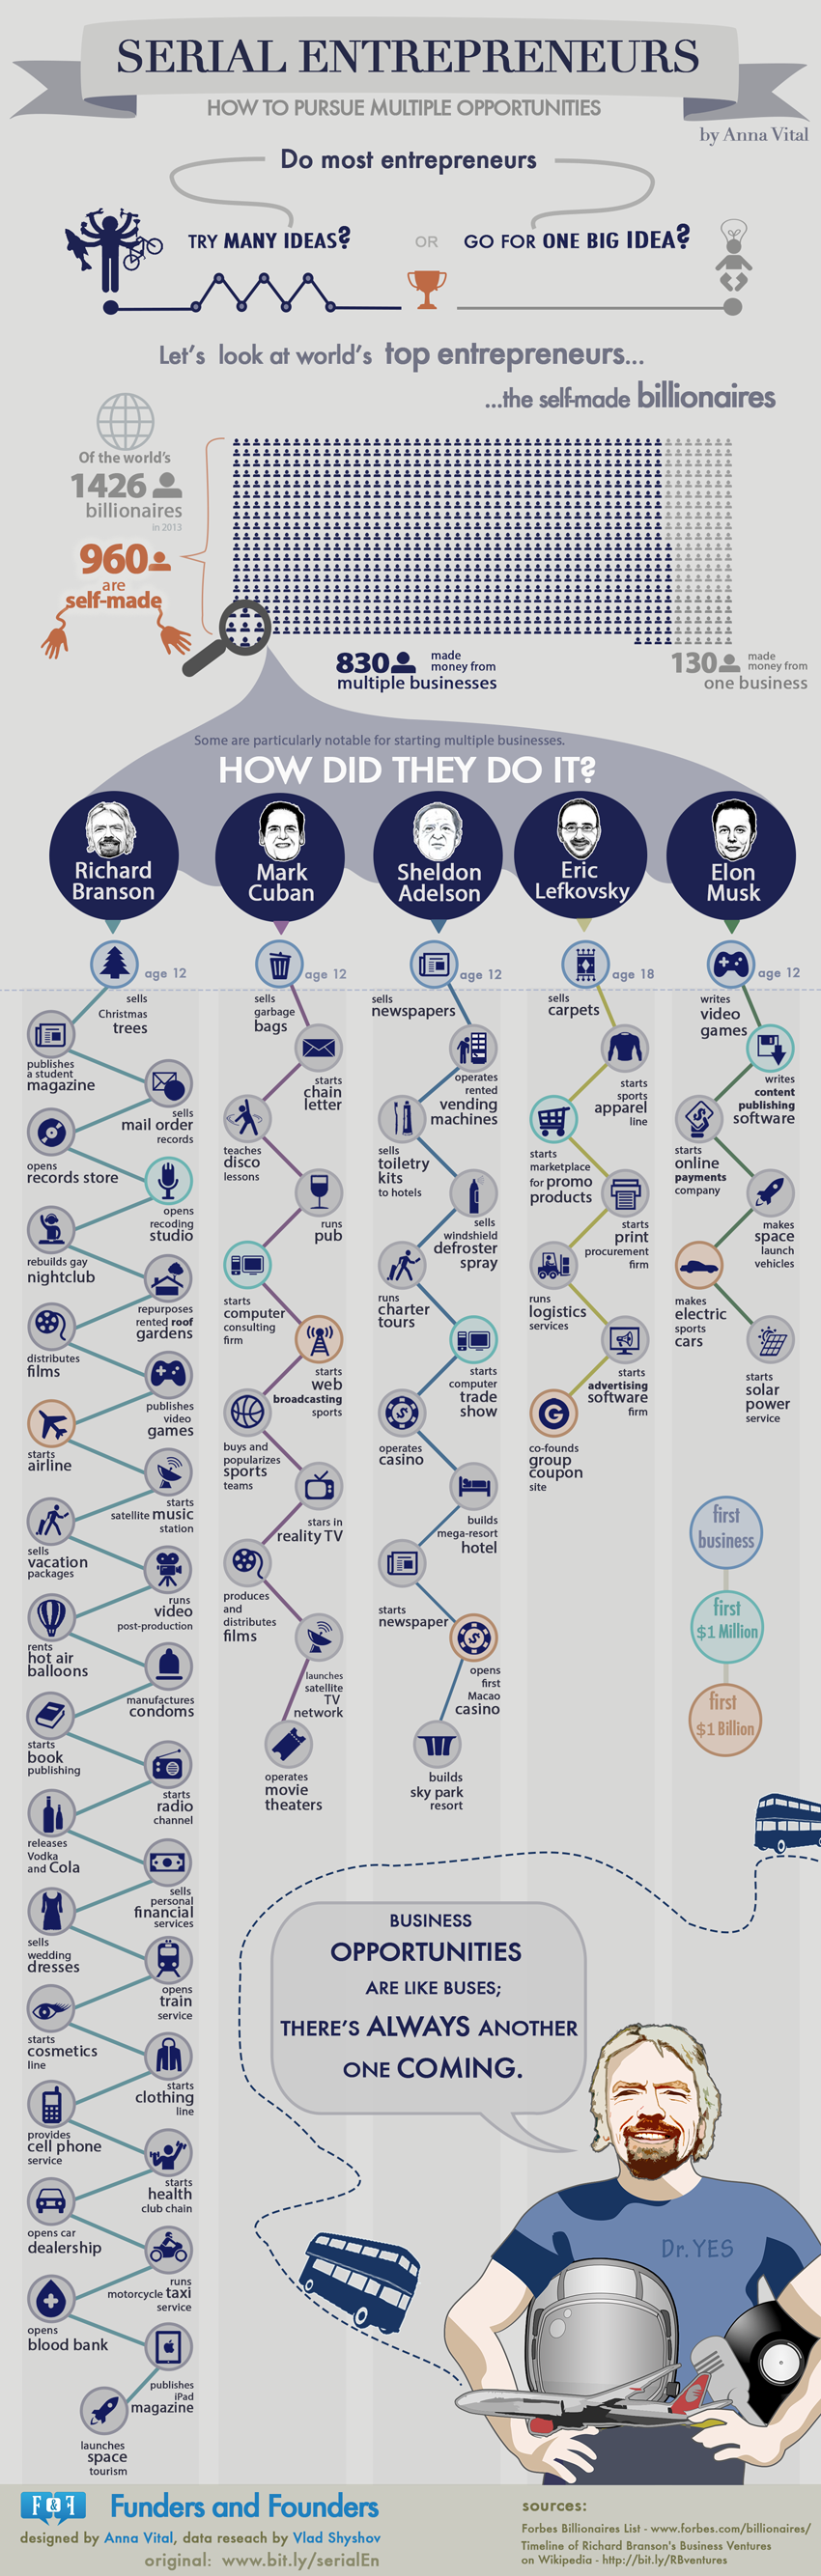 http://fundersandfounders.com/wp-content/uploads/2013/08/serial-entrepreneurs-how-to-pursue-multiple-opportunities-infographic.png